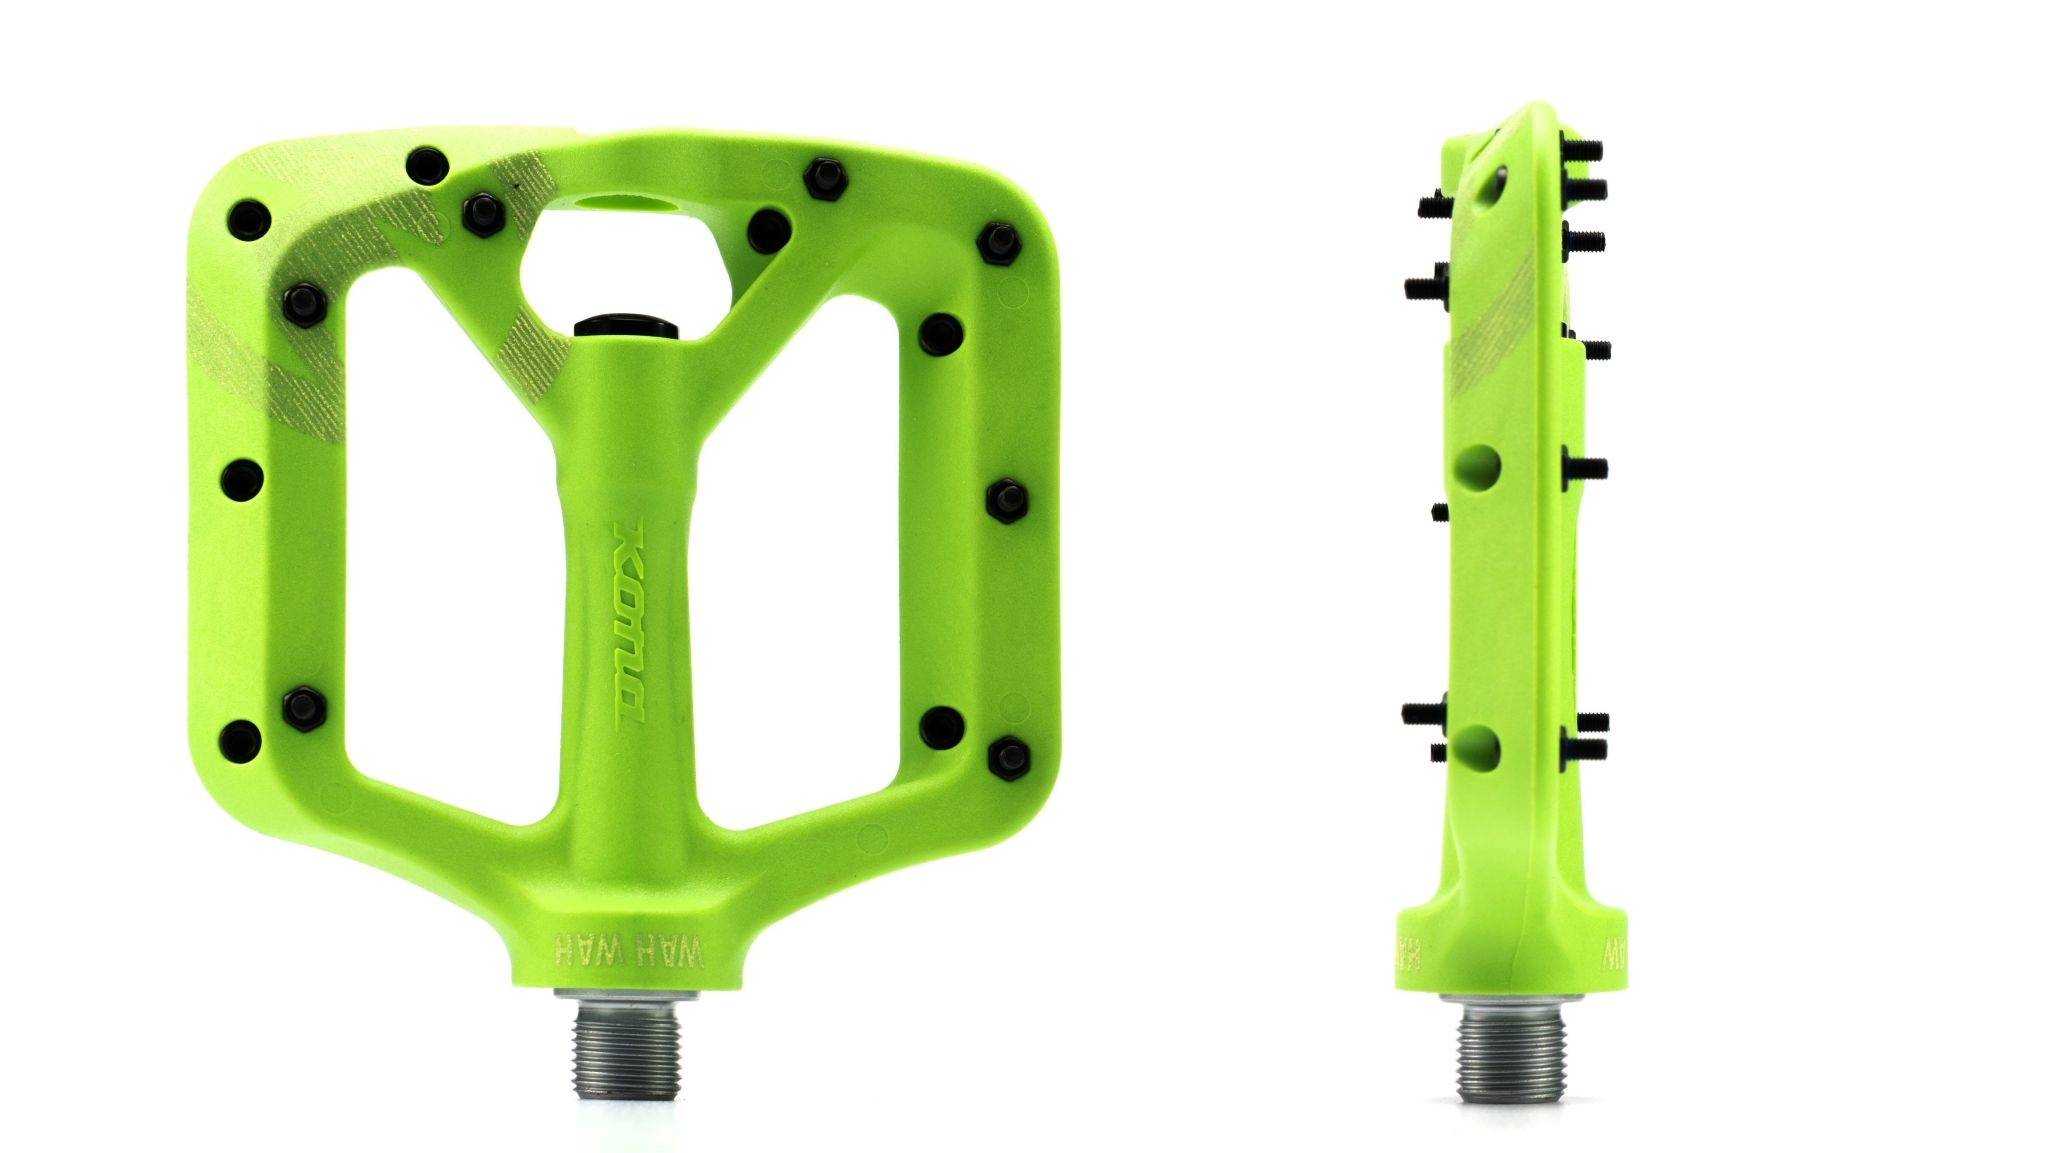 Kona Wah Wah Small Slime Green Composite Pedals